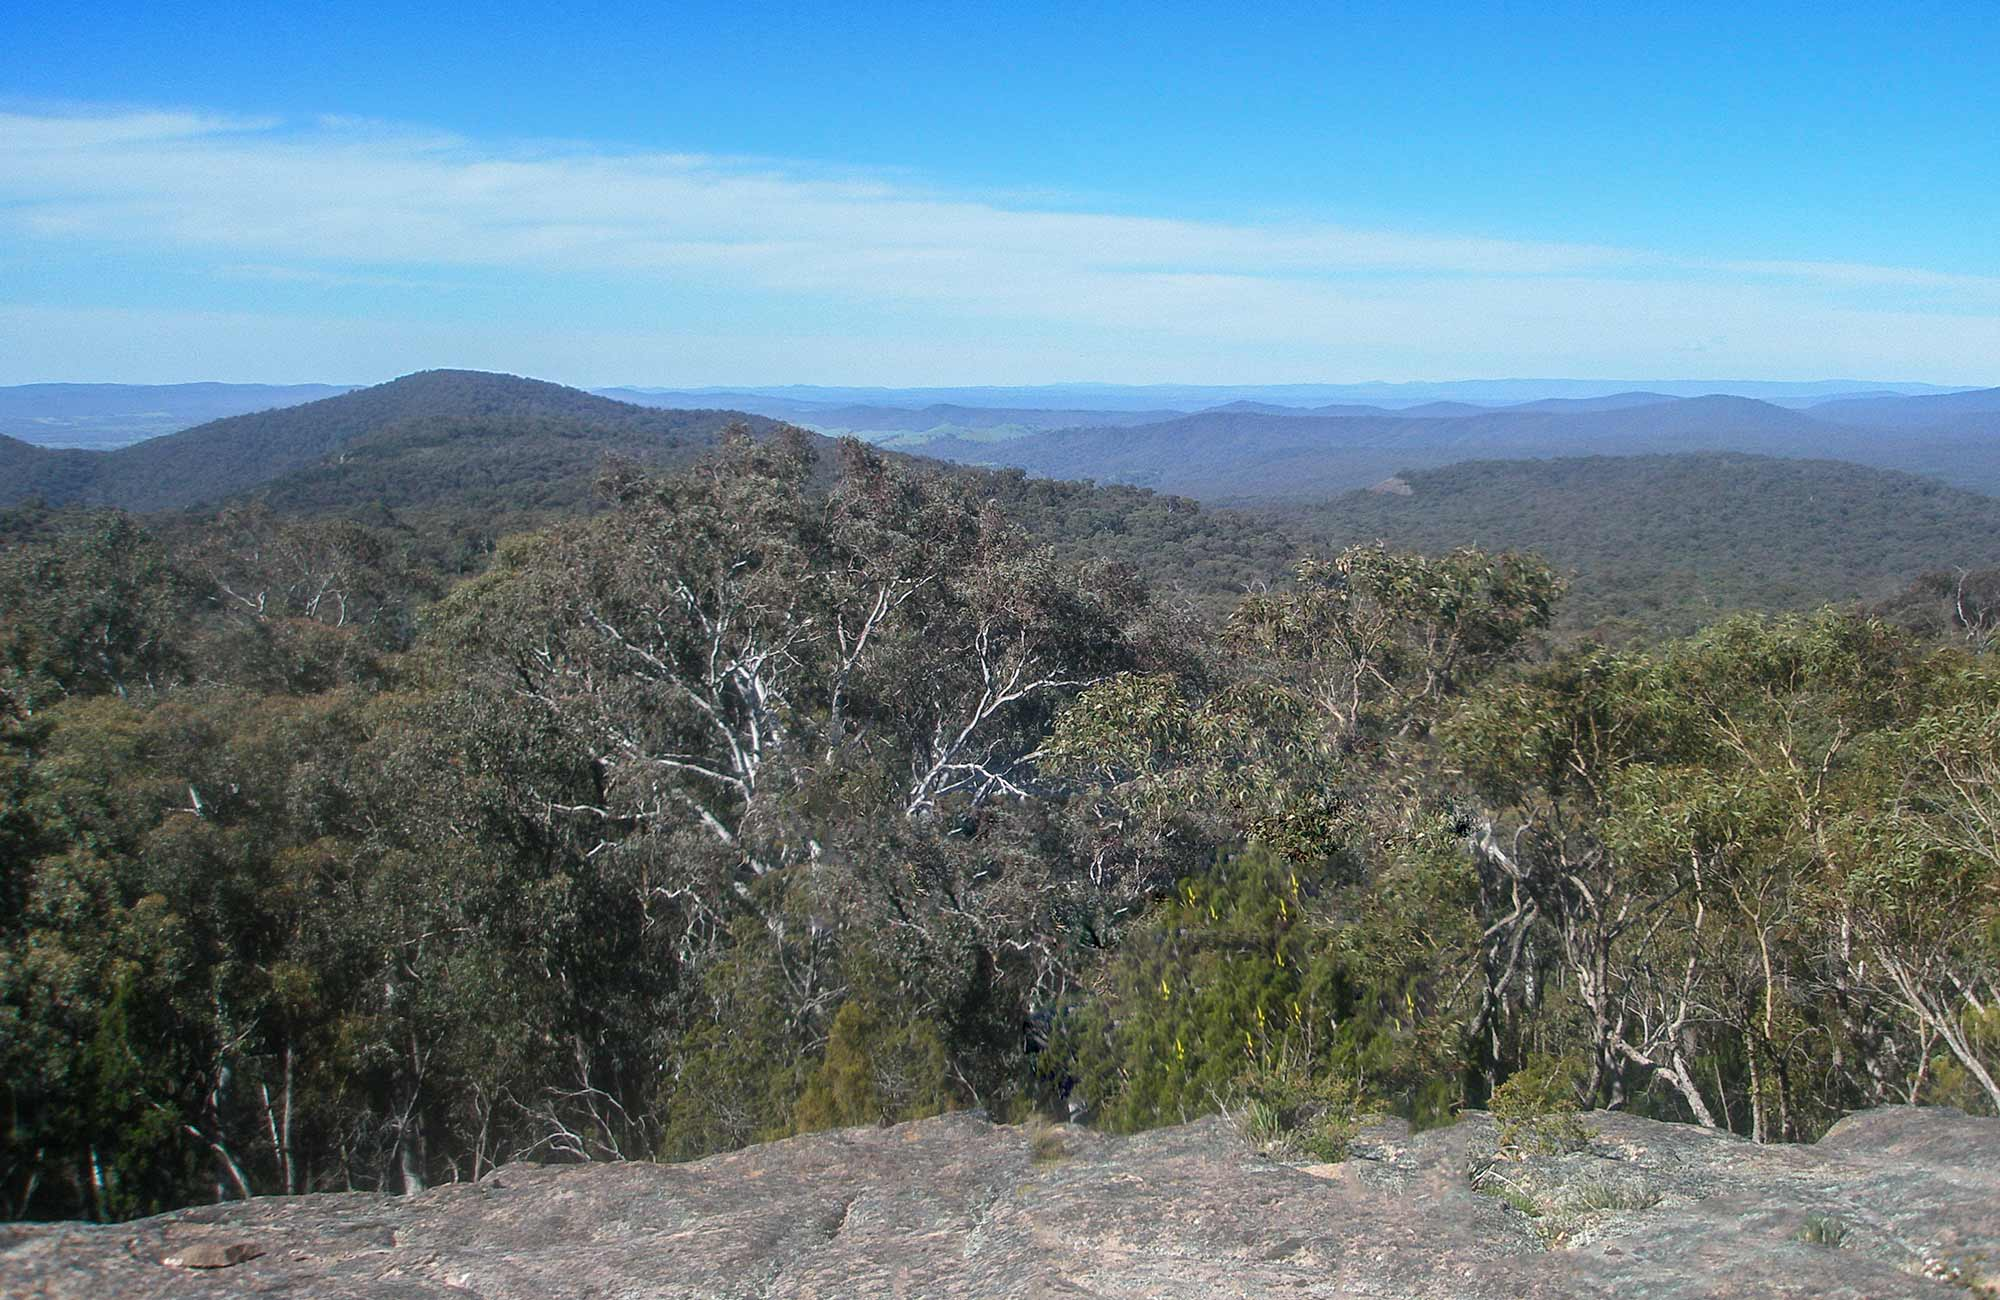 Norths lookout, Woomargama National Park. Photo: Dave Pearce/NSW Government